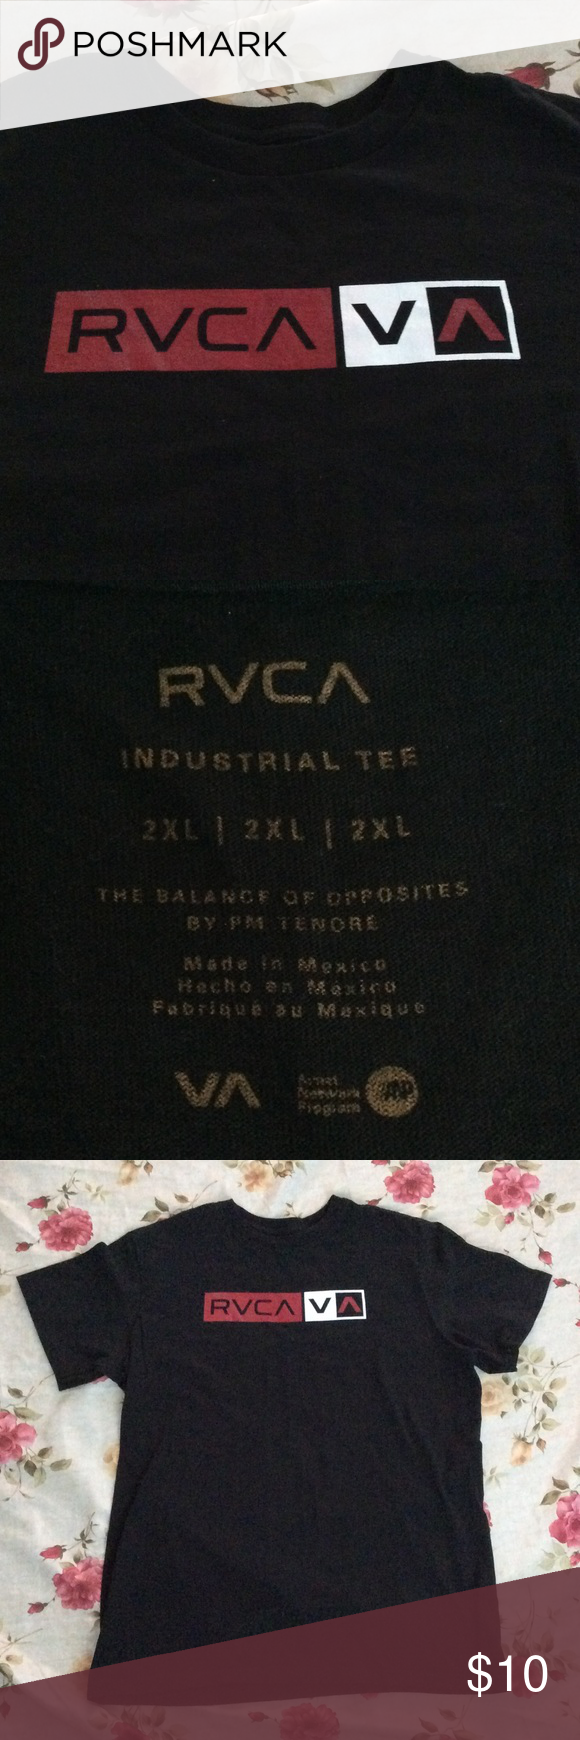 RVCA MENS TEE RVCA MENS TEE SIZE XXL. GENTLY USED. GREAT CONDITION. NO HOLES OR STAINS 😎 RVCA Shirts Tees - Short Sleeve